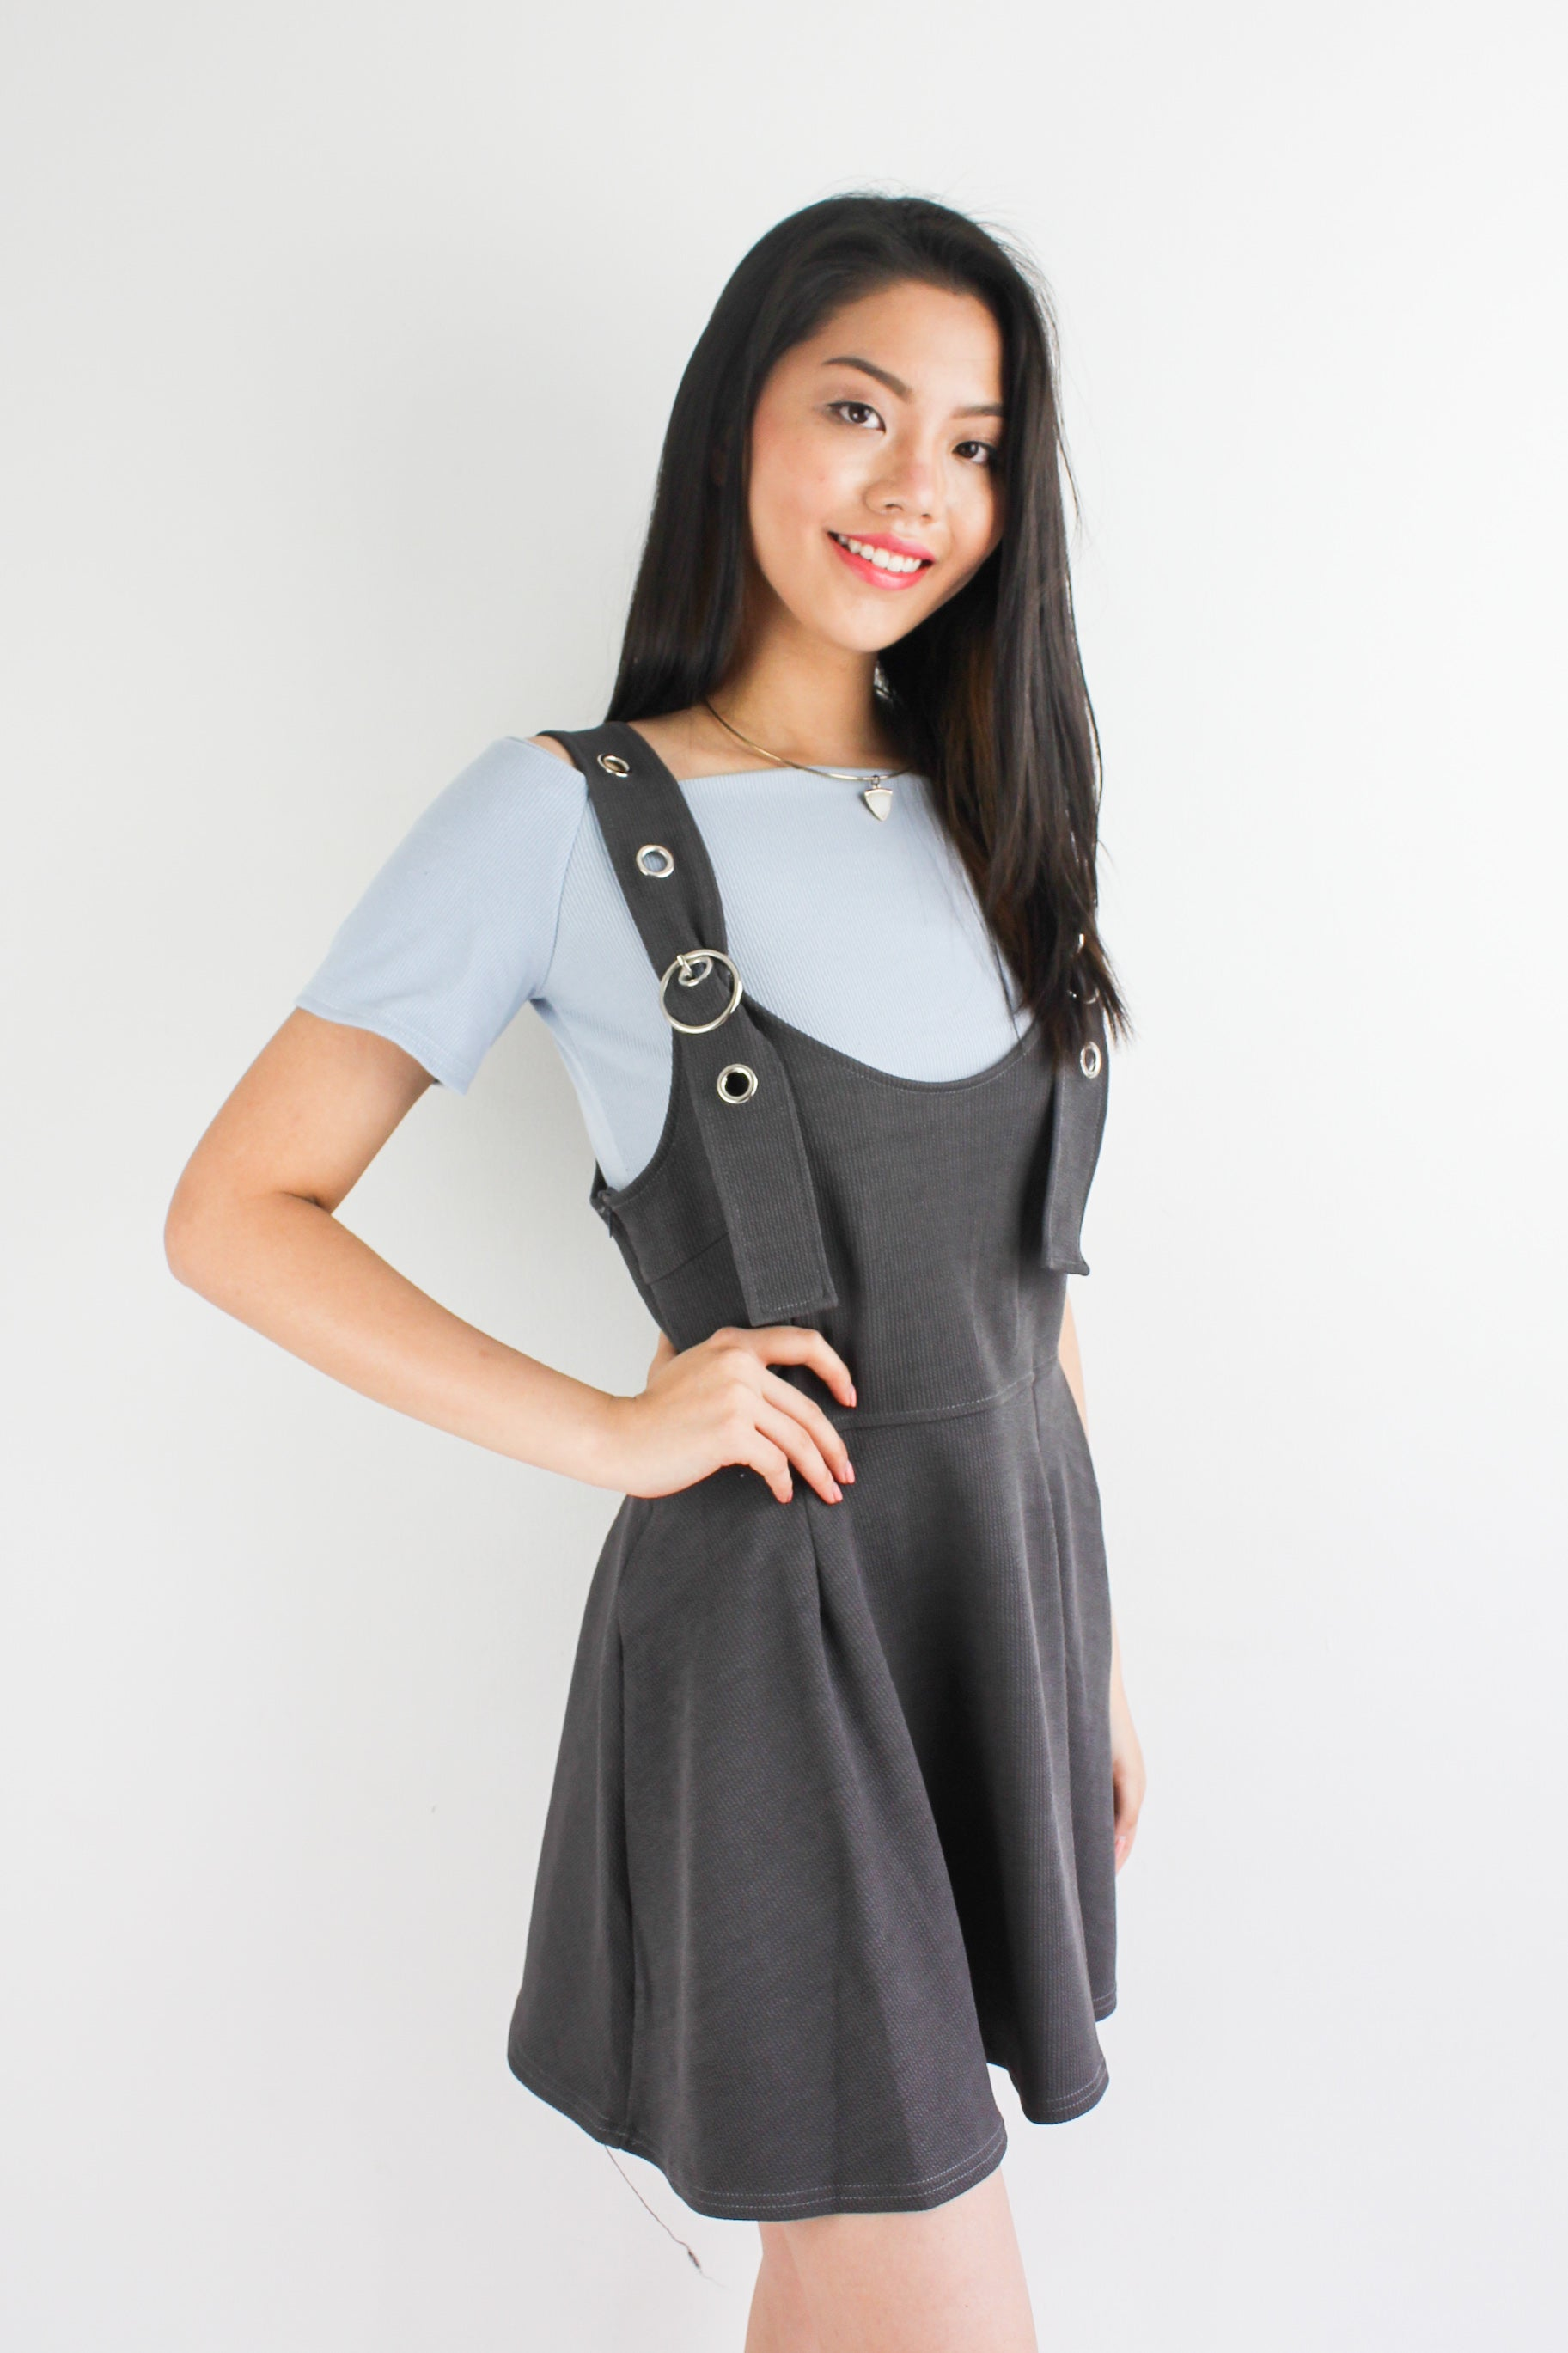 Grommet Skater Pinafore in Charcoal Grey